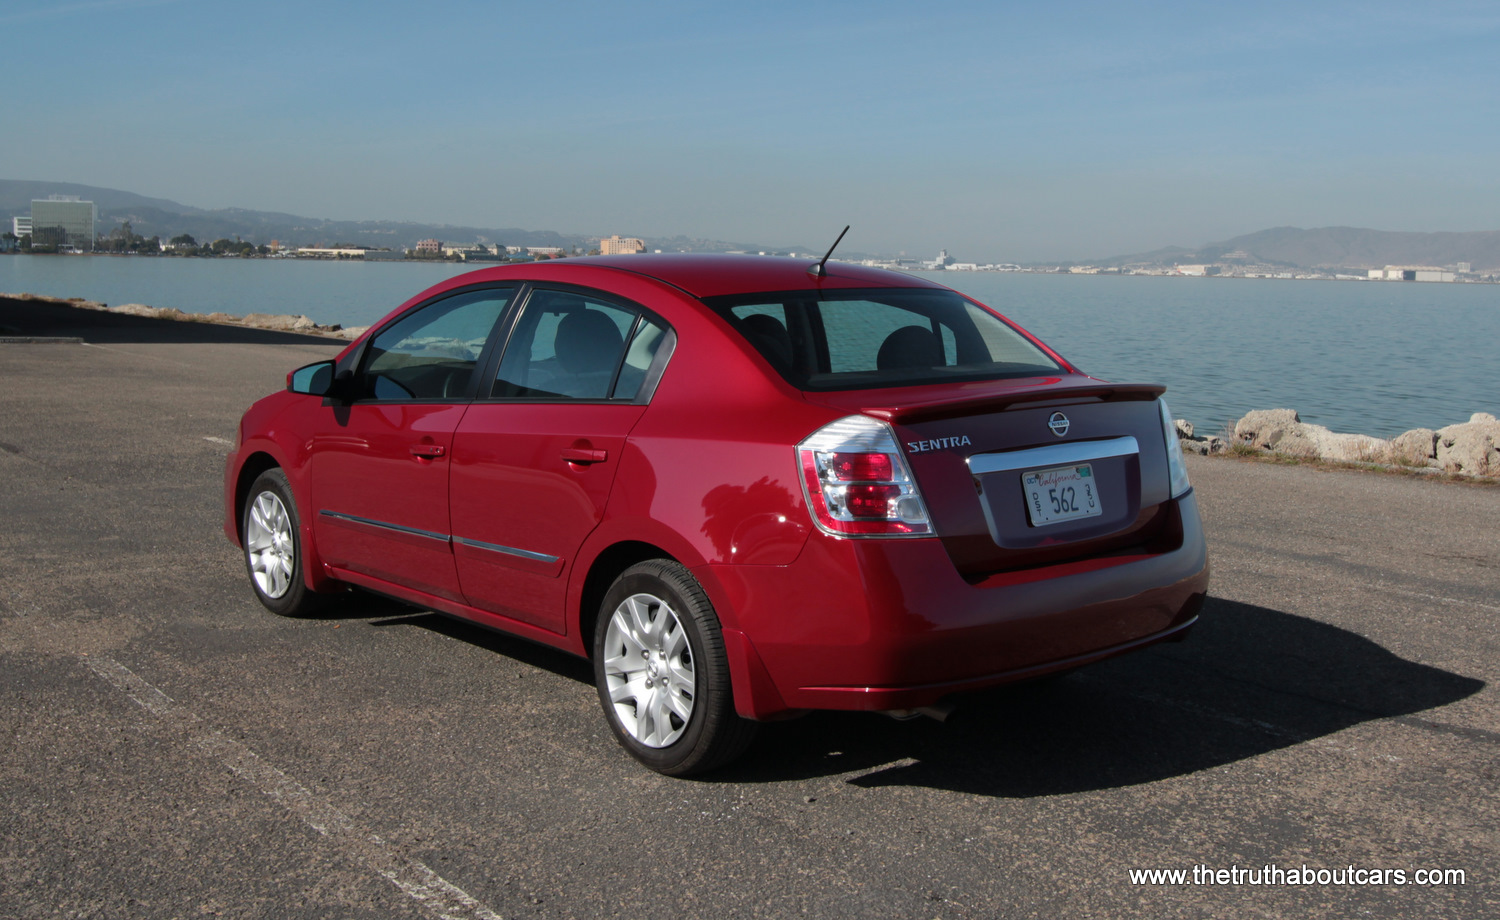 Review: 2012 Nissan Versa vs 2012 Nissan Sentra - The ...